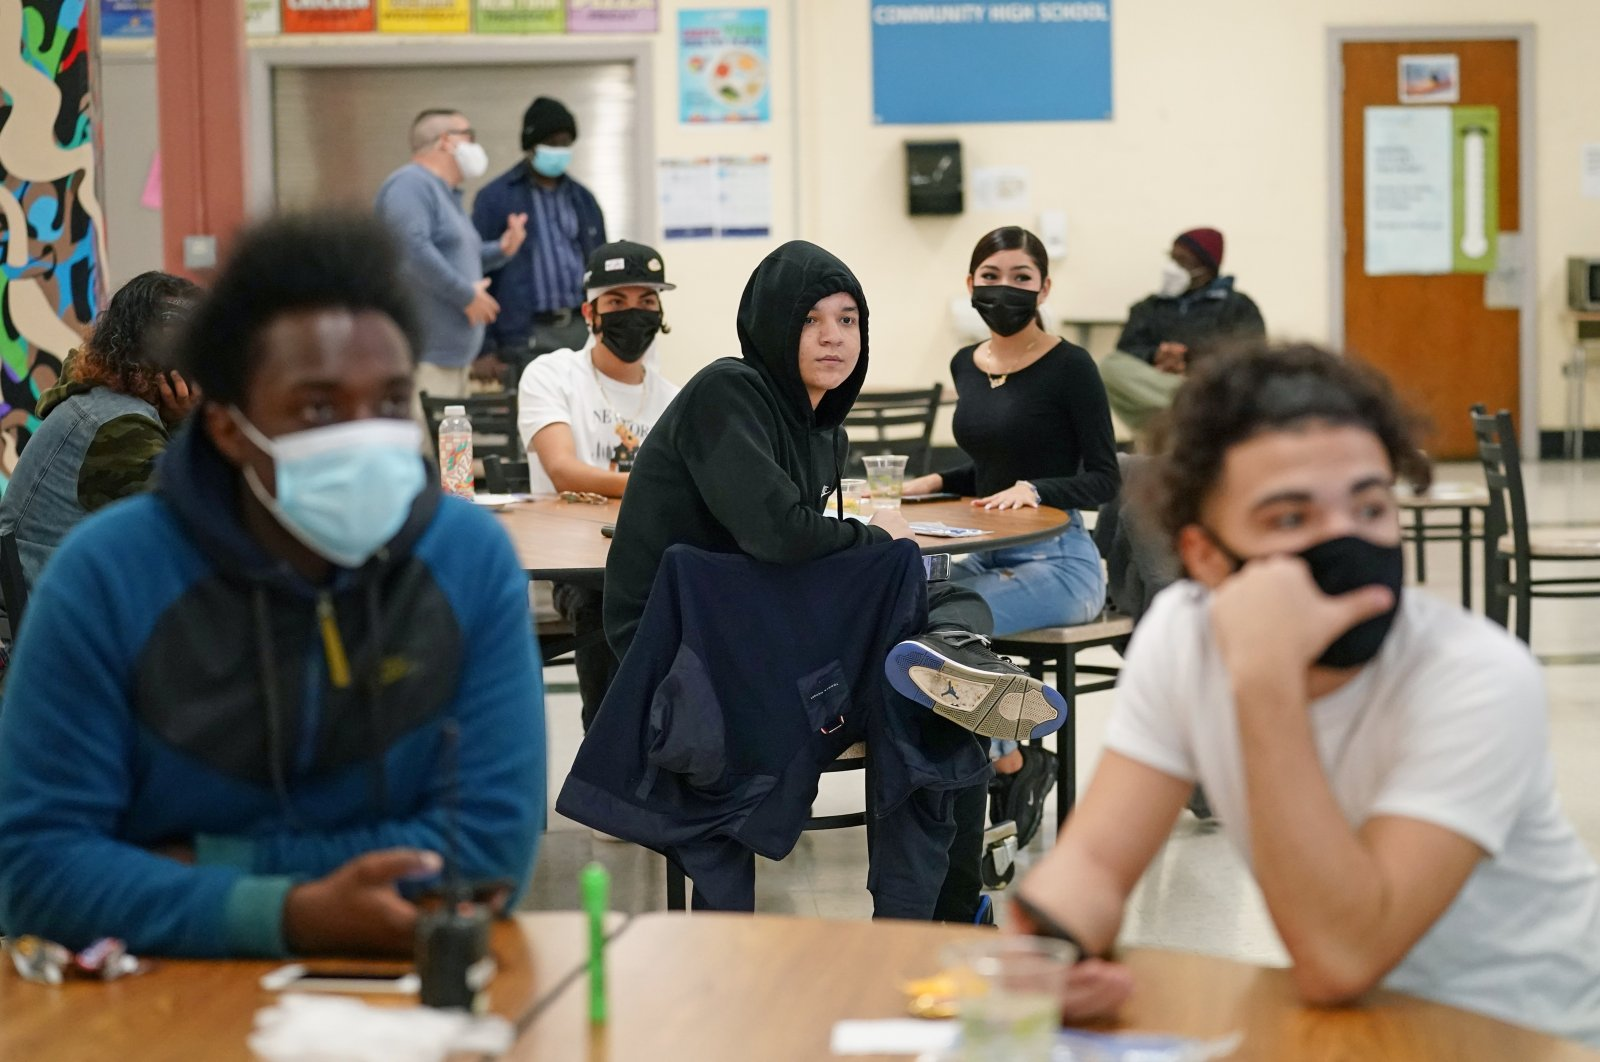 Students at West Brooklyn Community High School listen to questions posed by their principal during a current events trivia quiz and pizza party in the school's cafeteria in New York City, New York, U.S., Oct. 29, 2020. (AP Photo)